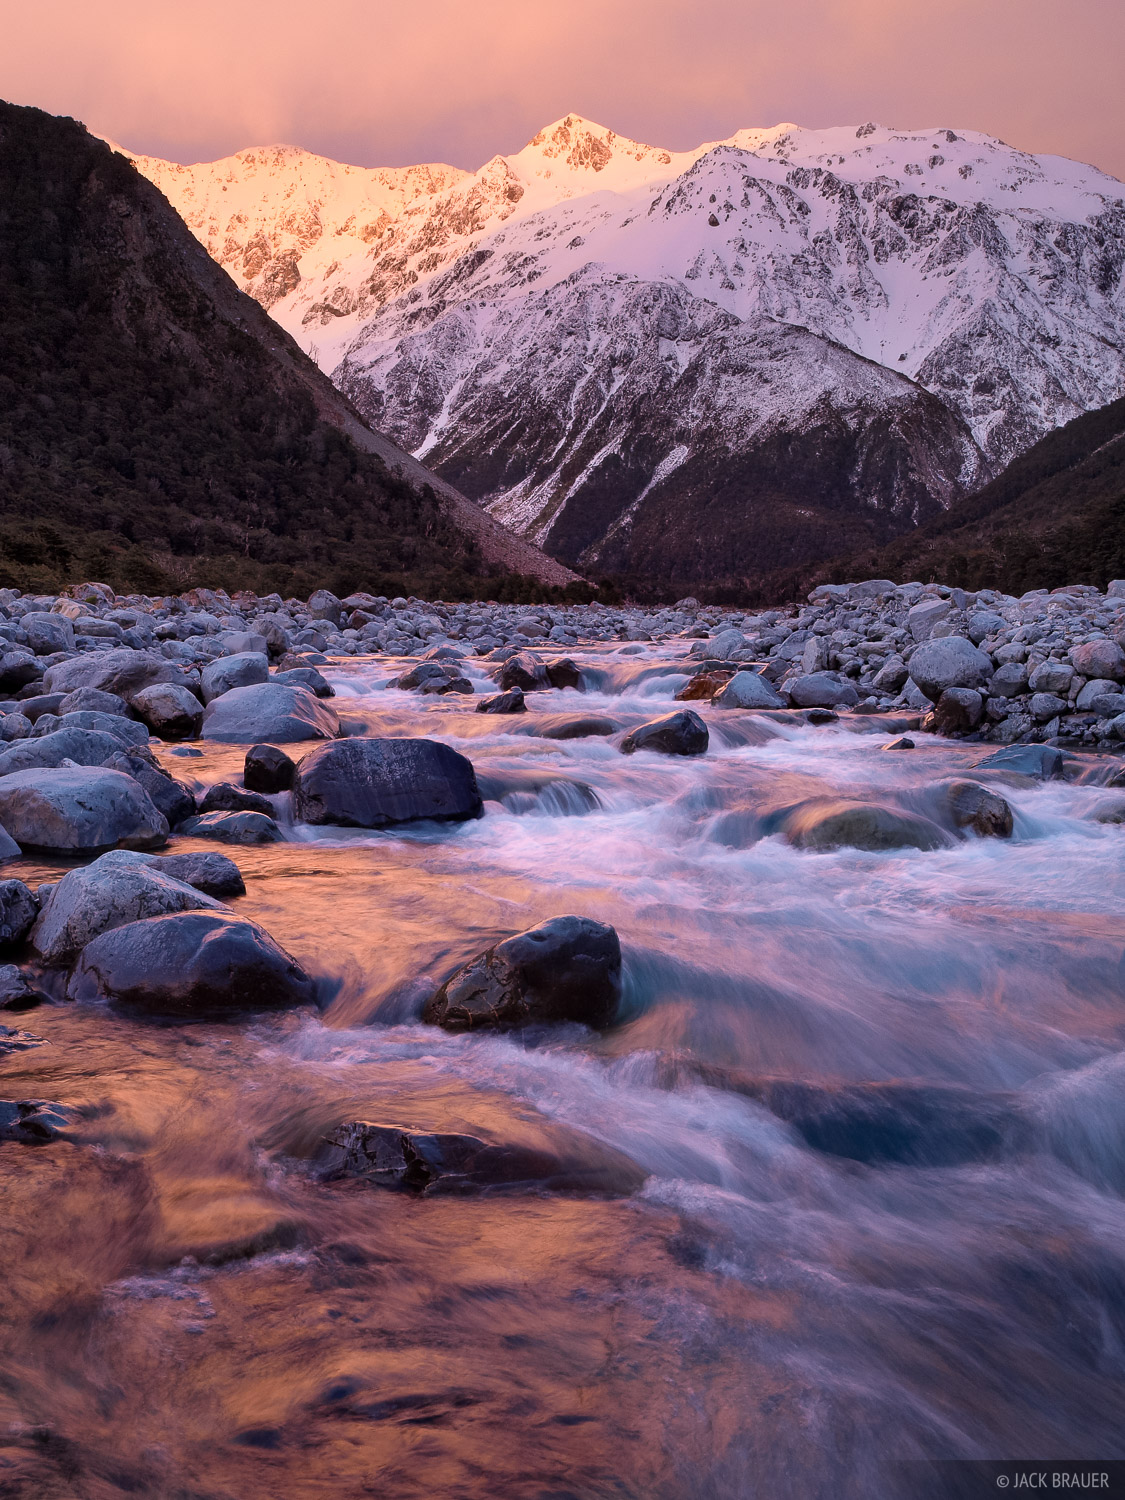 Waimakariri River, Arthur's Pass, New Zealand, Arthurs Pass National Park, photo